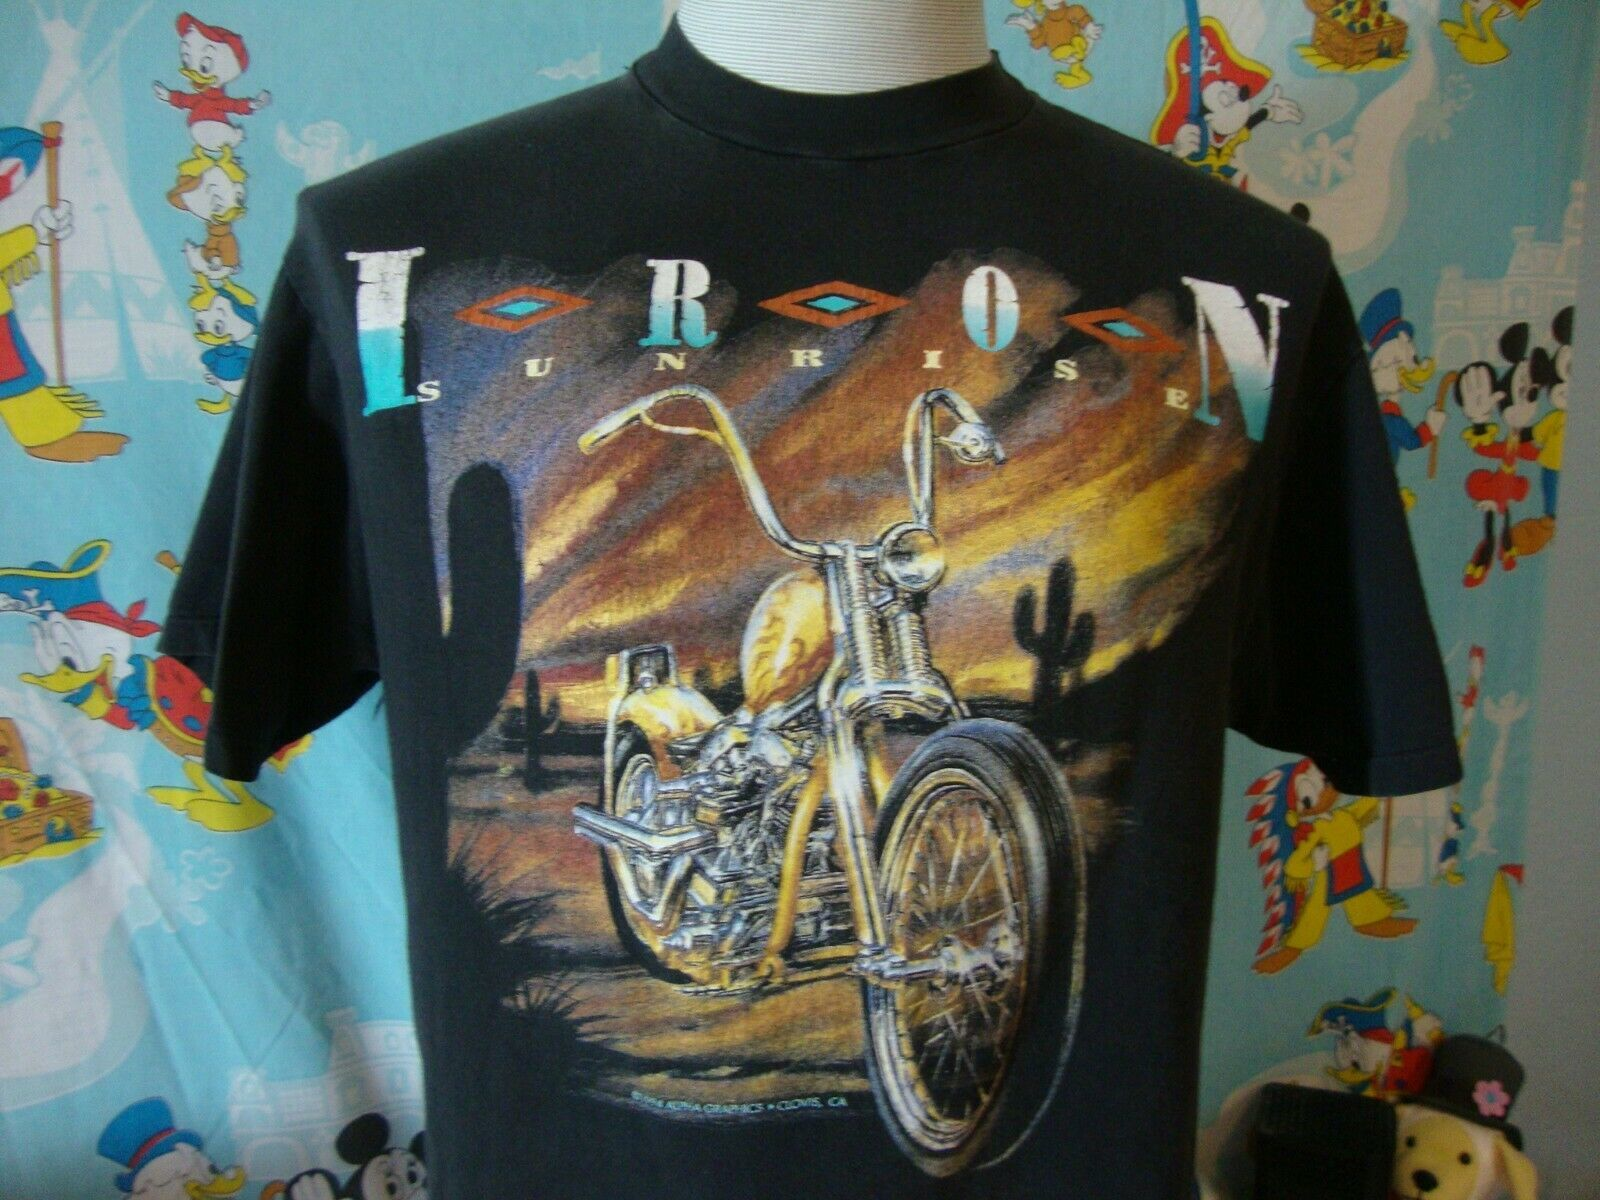 Primary image for Vintage 90's Iron Sunrise White Horse Motorcycle Biker T Shirt L